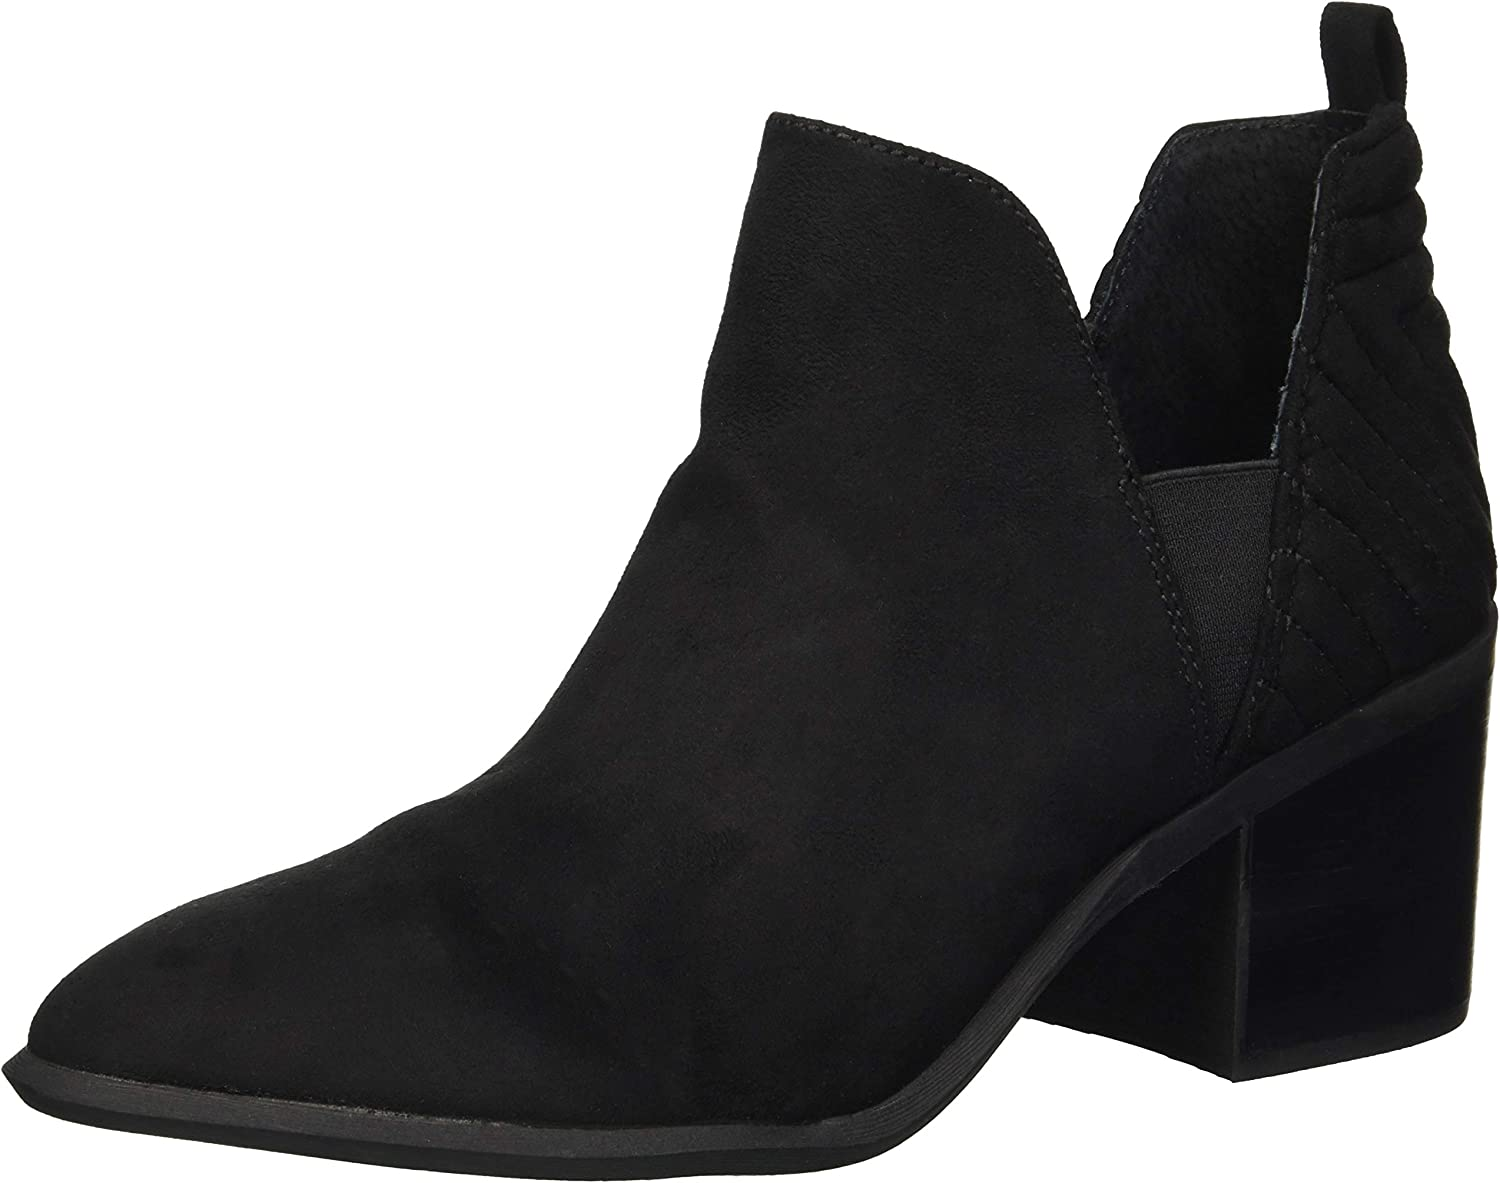 Carlos by Carlos Santana Womens Addison Ankle Boot